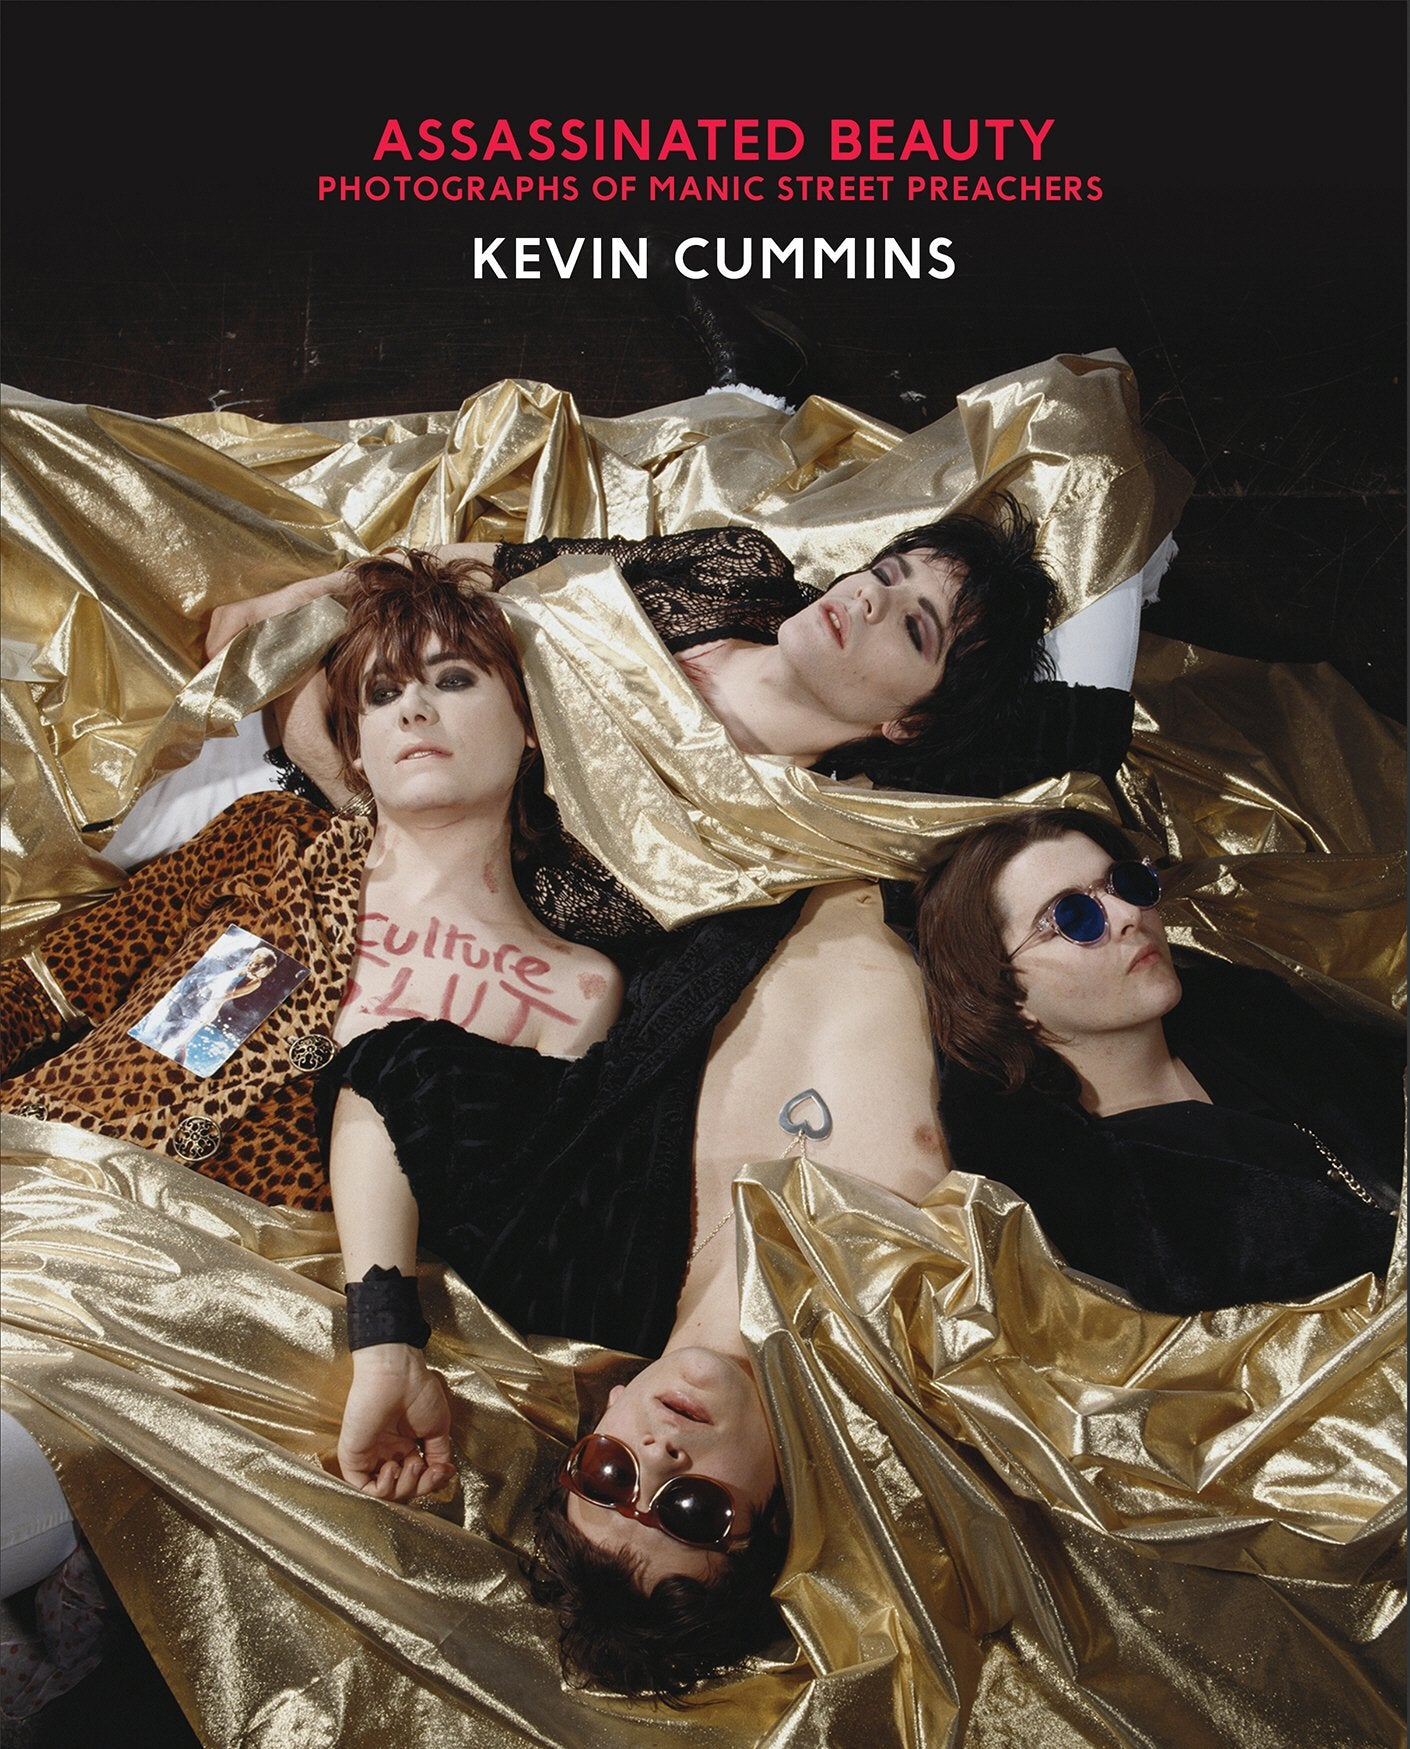 Assassinated beauty - Kevin Cummins [BOOK]